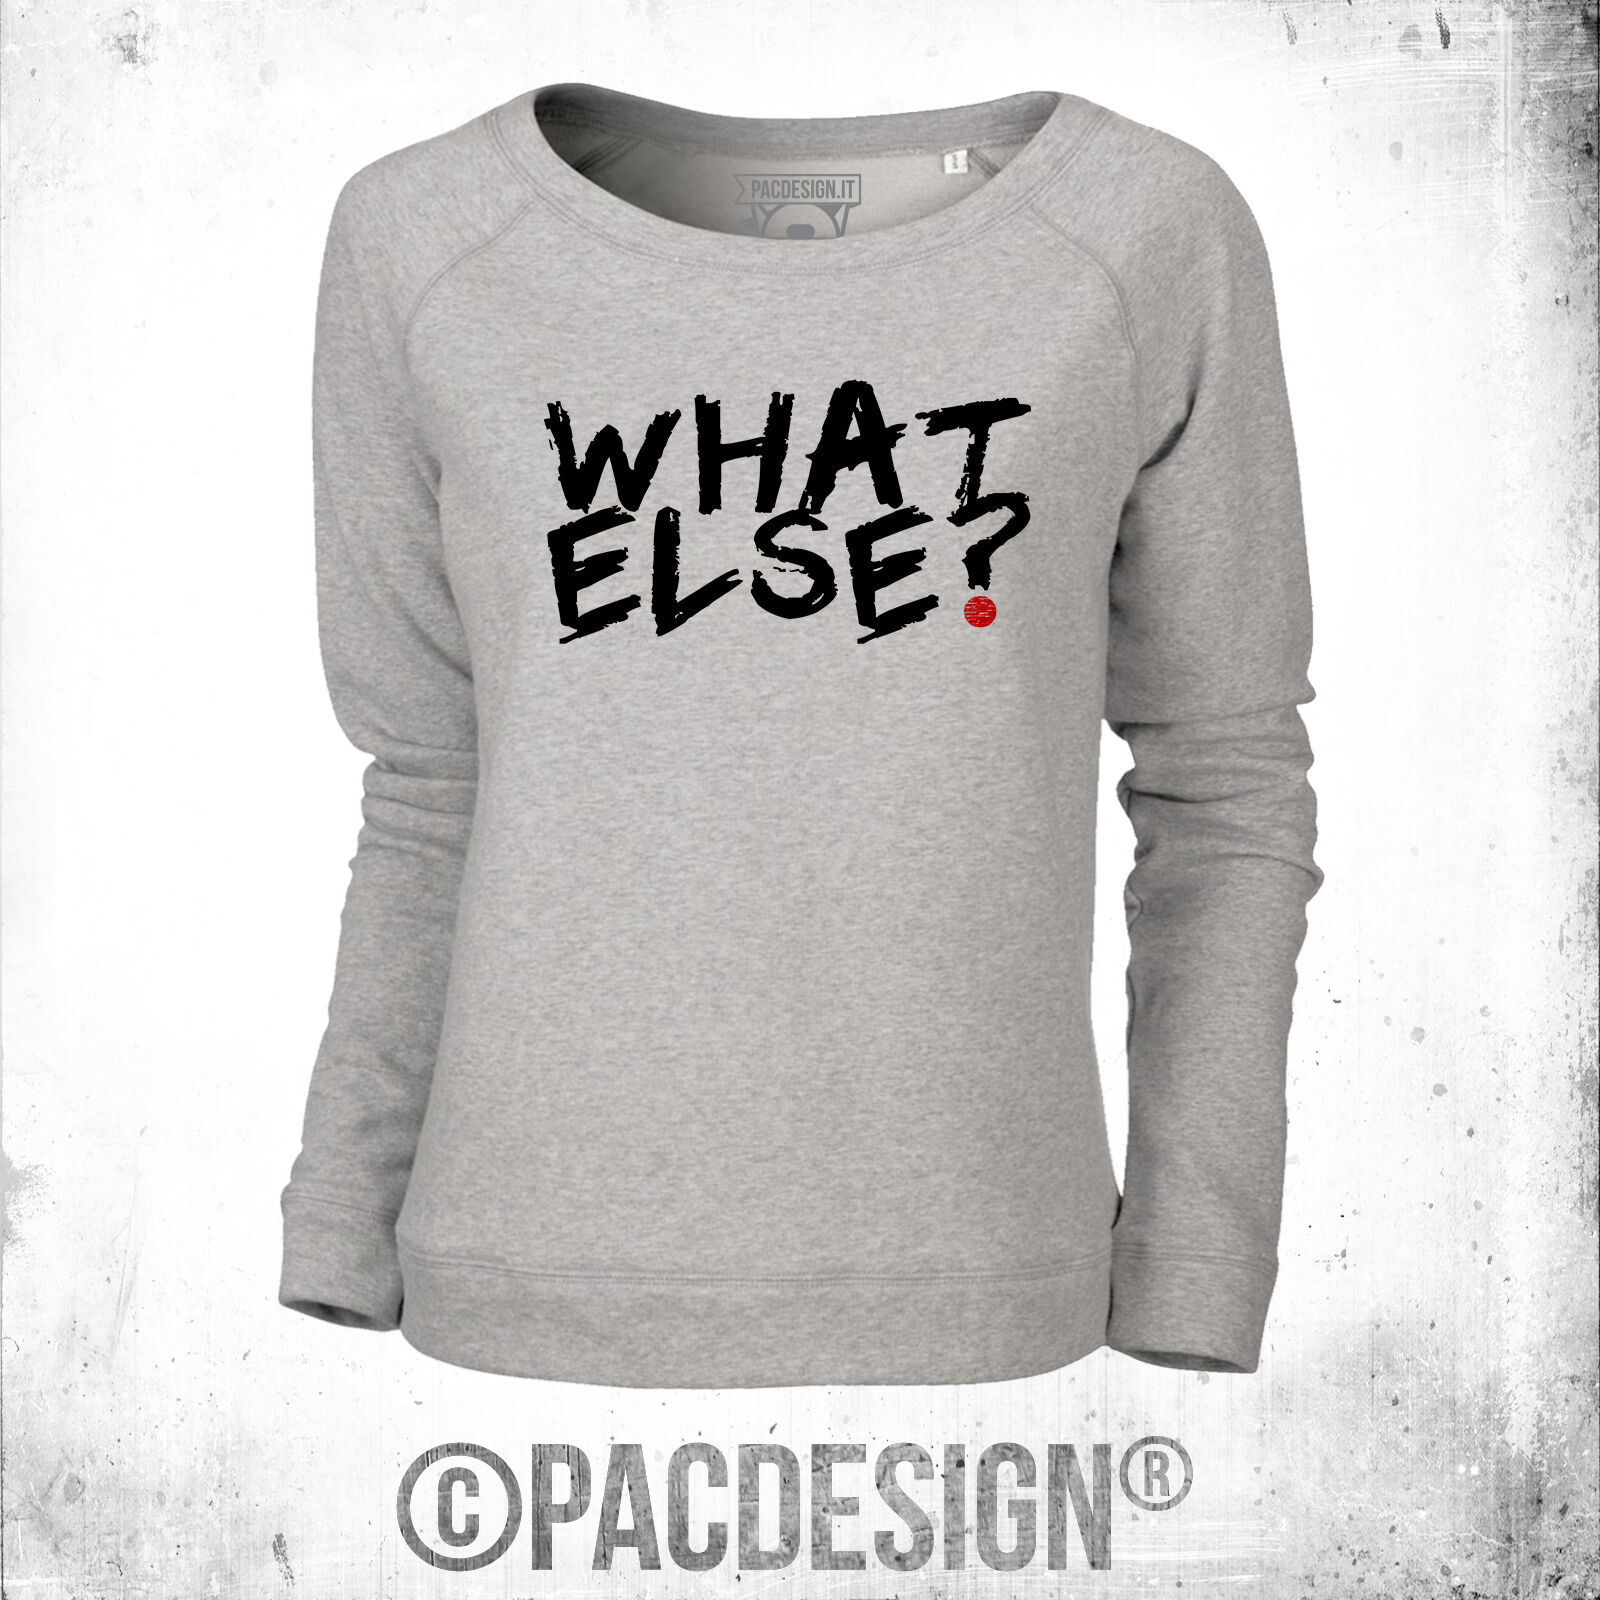 FELPA women WORDS WHAT WHAT WHAT ELSE WHY SO VINTAGE BD0015A 7feed1